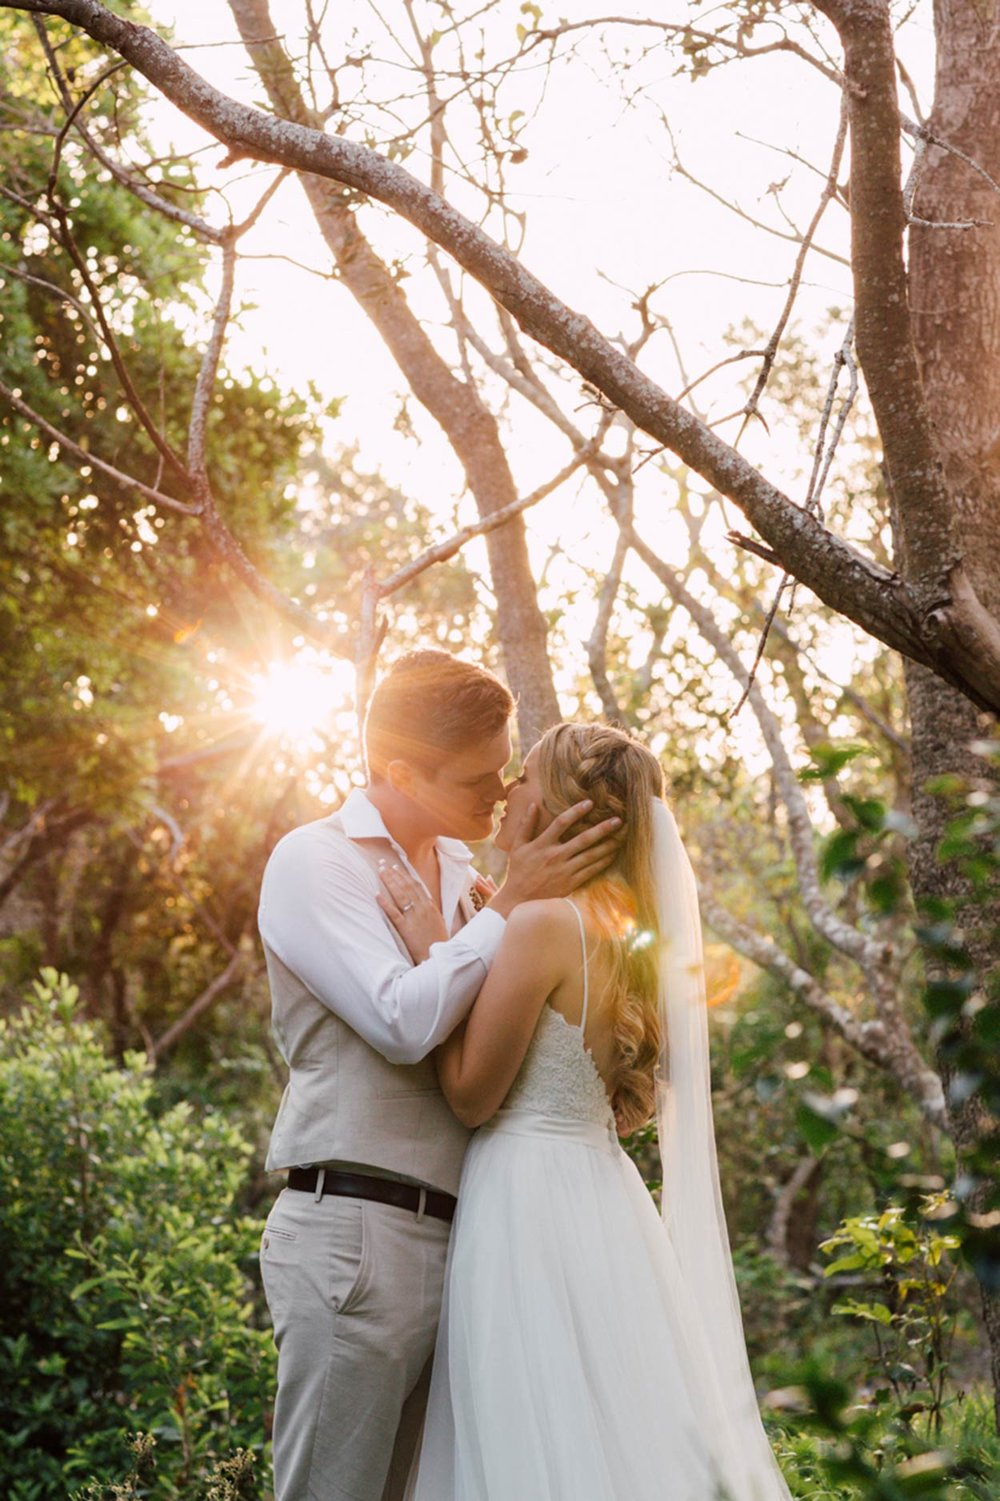 Best Noosa, Maleny Hinterland Pre Destination Wedding Photographers, Sunshine Coast - Queensland, Australian